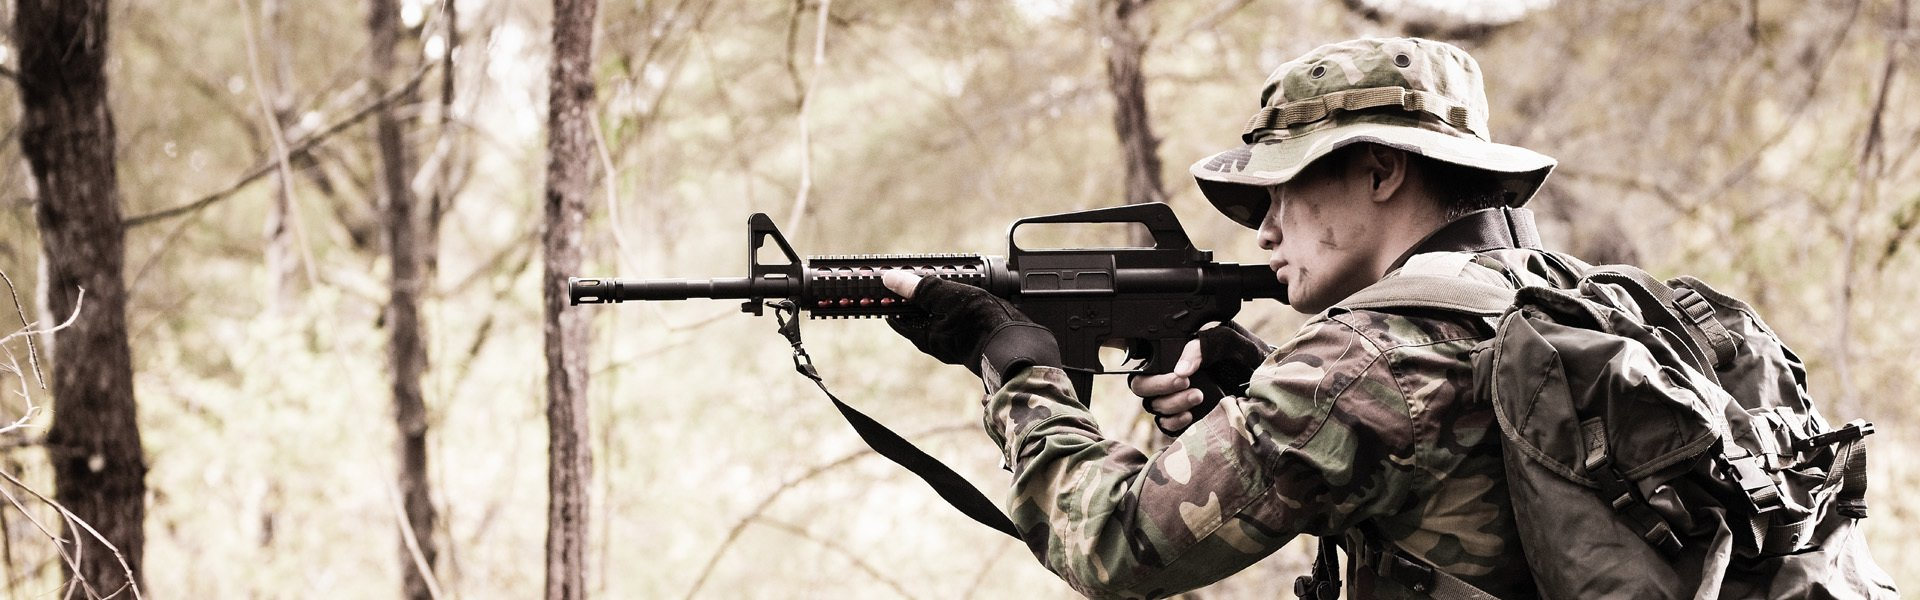 Soldier-Standing-with-M16